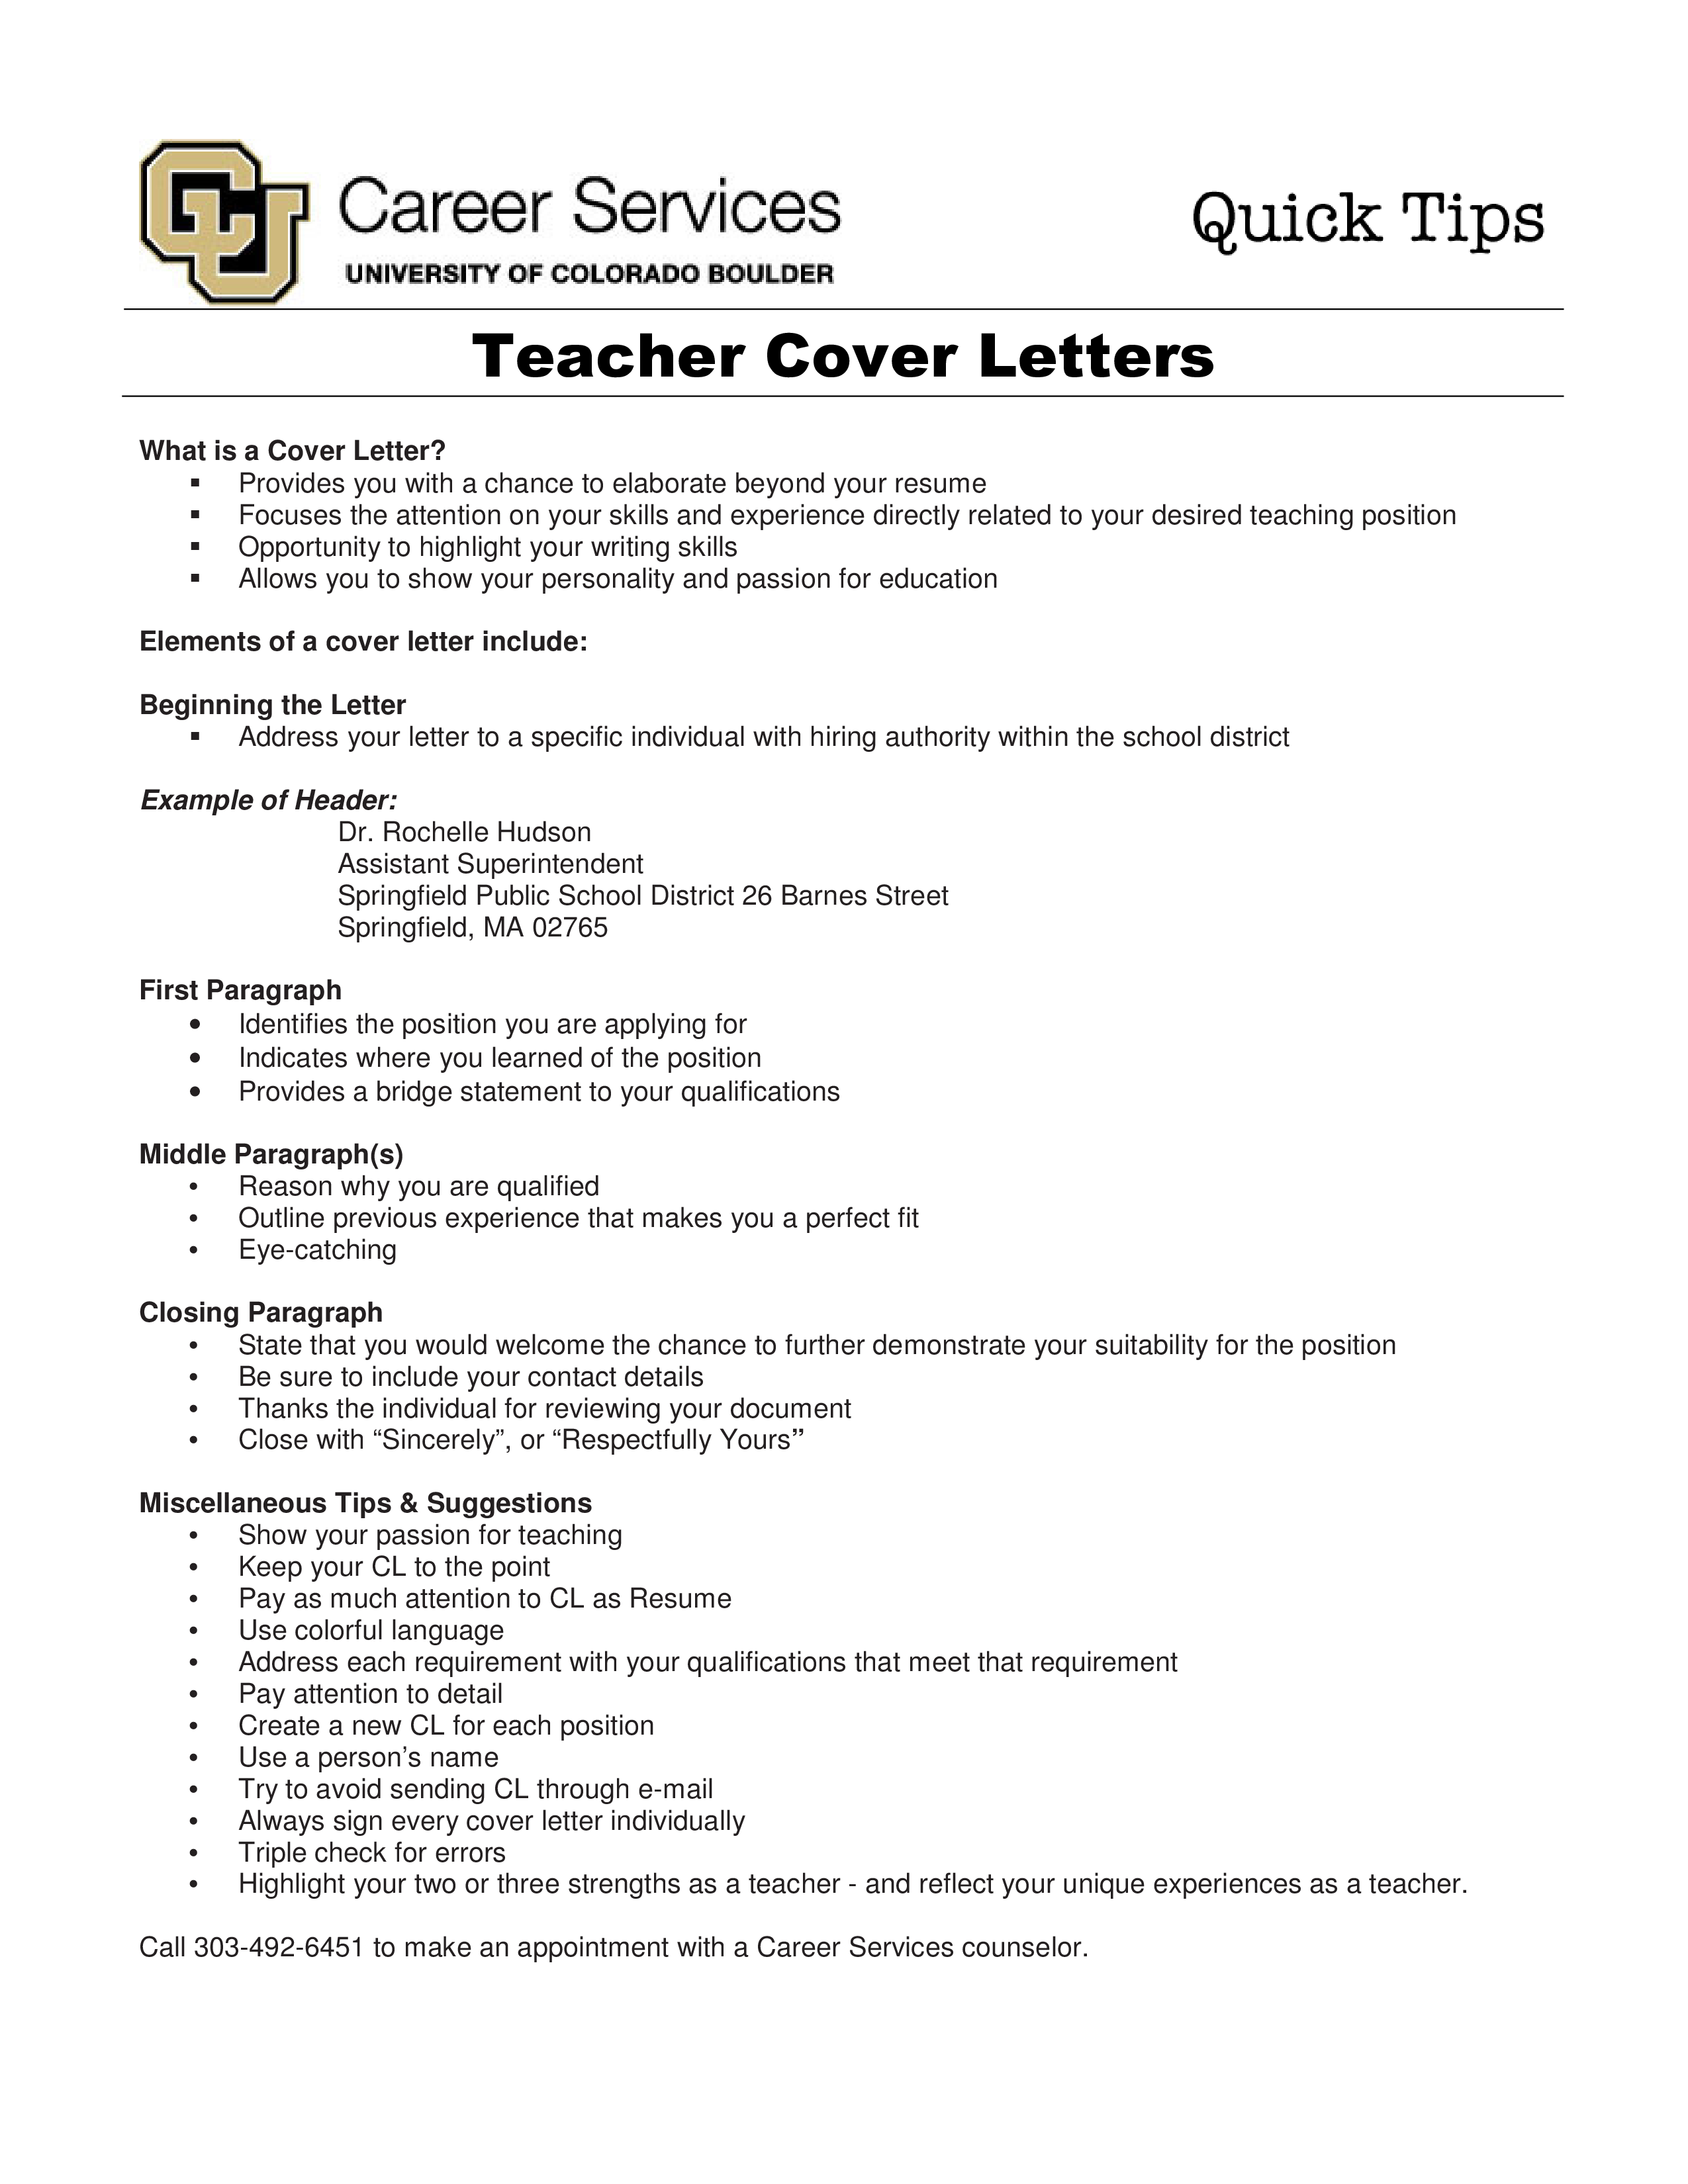 Free Job Application Cover Letter For Teacher Templates At